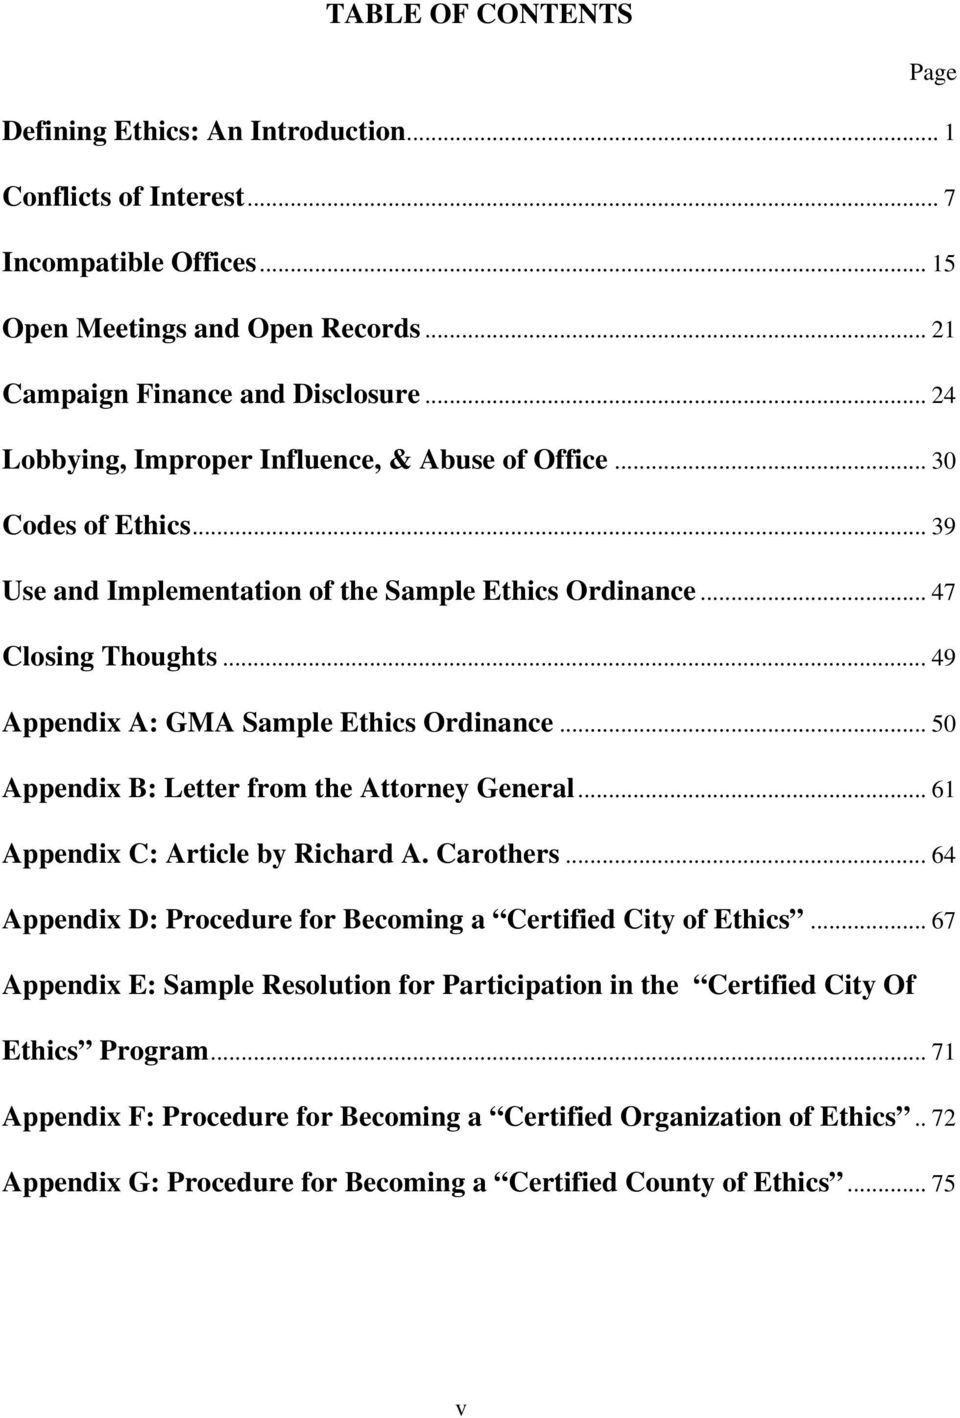 .. 49 Appendix A: GMA Sample Ethics Ordinance... 50 Appendix B: Letter from the Attorney General... 61 Appendix C: Article by Richard A. Carothers.